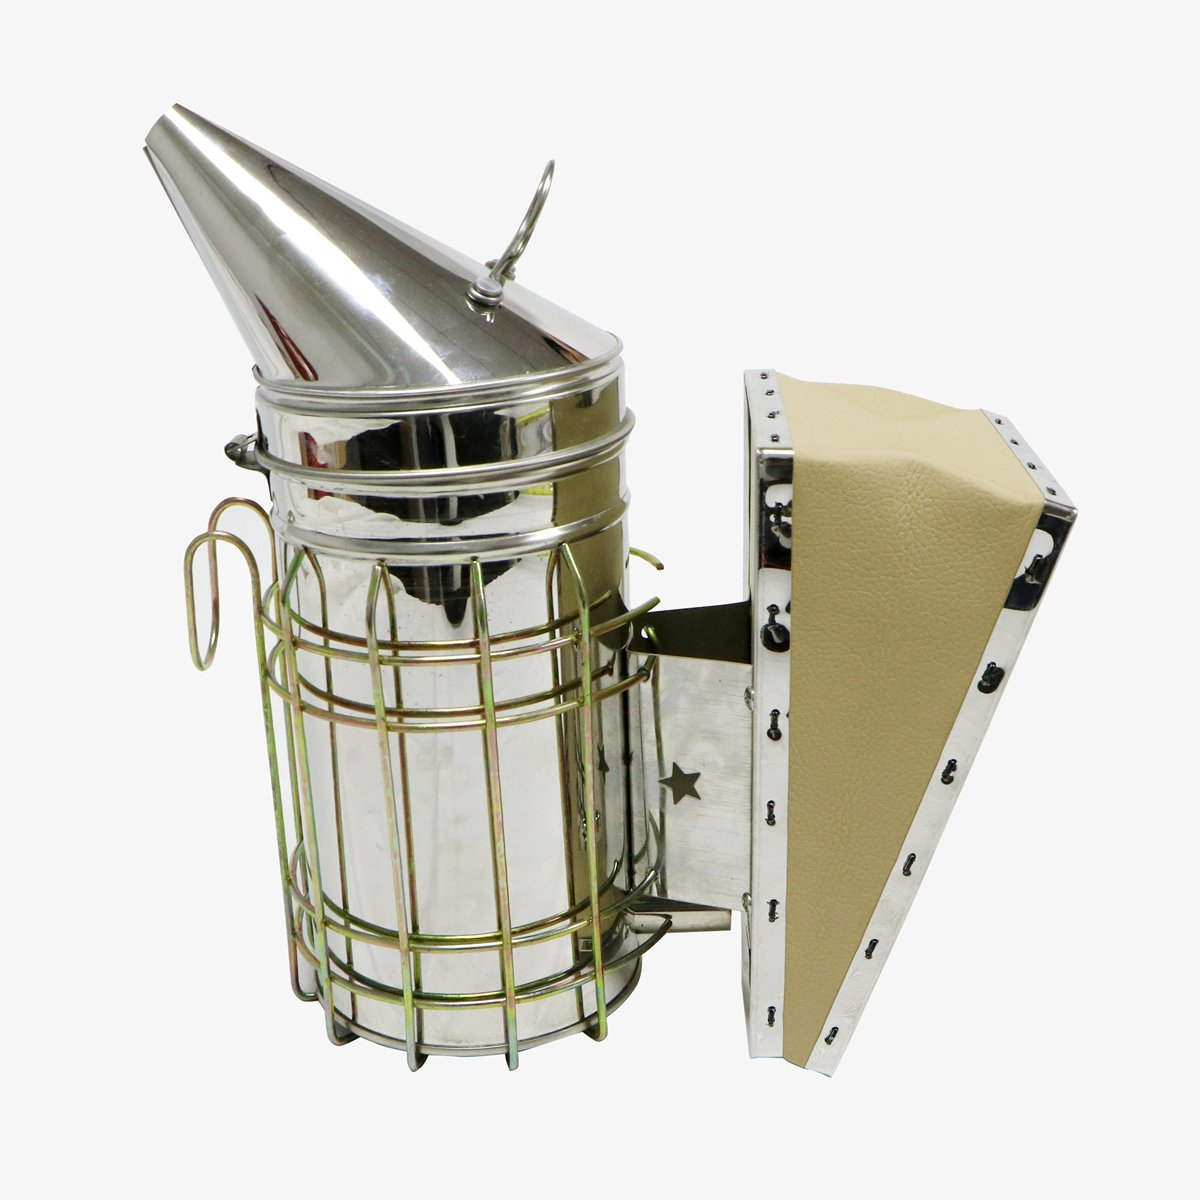 Beefun Bee Hive Stainless Steel Smoker Beekeeping Equipment with Heat Shield Protection (Leather)